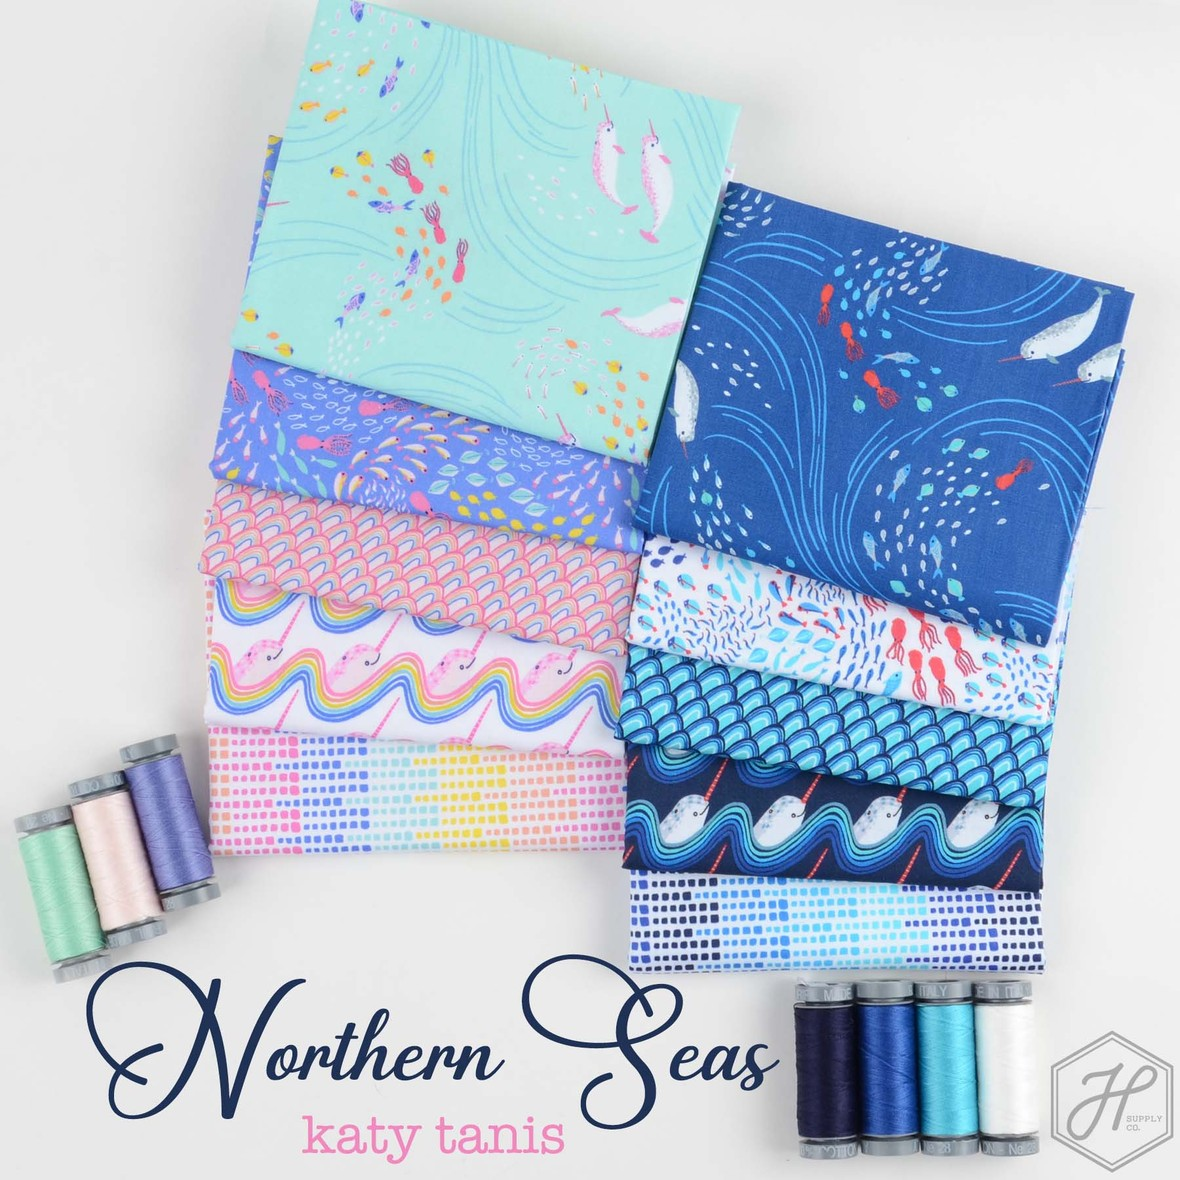 Northern Seas Fabric Poster Blend at Hawthorne Supply Co